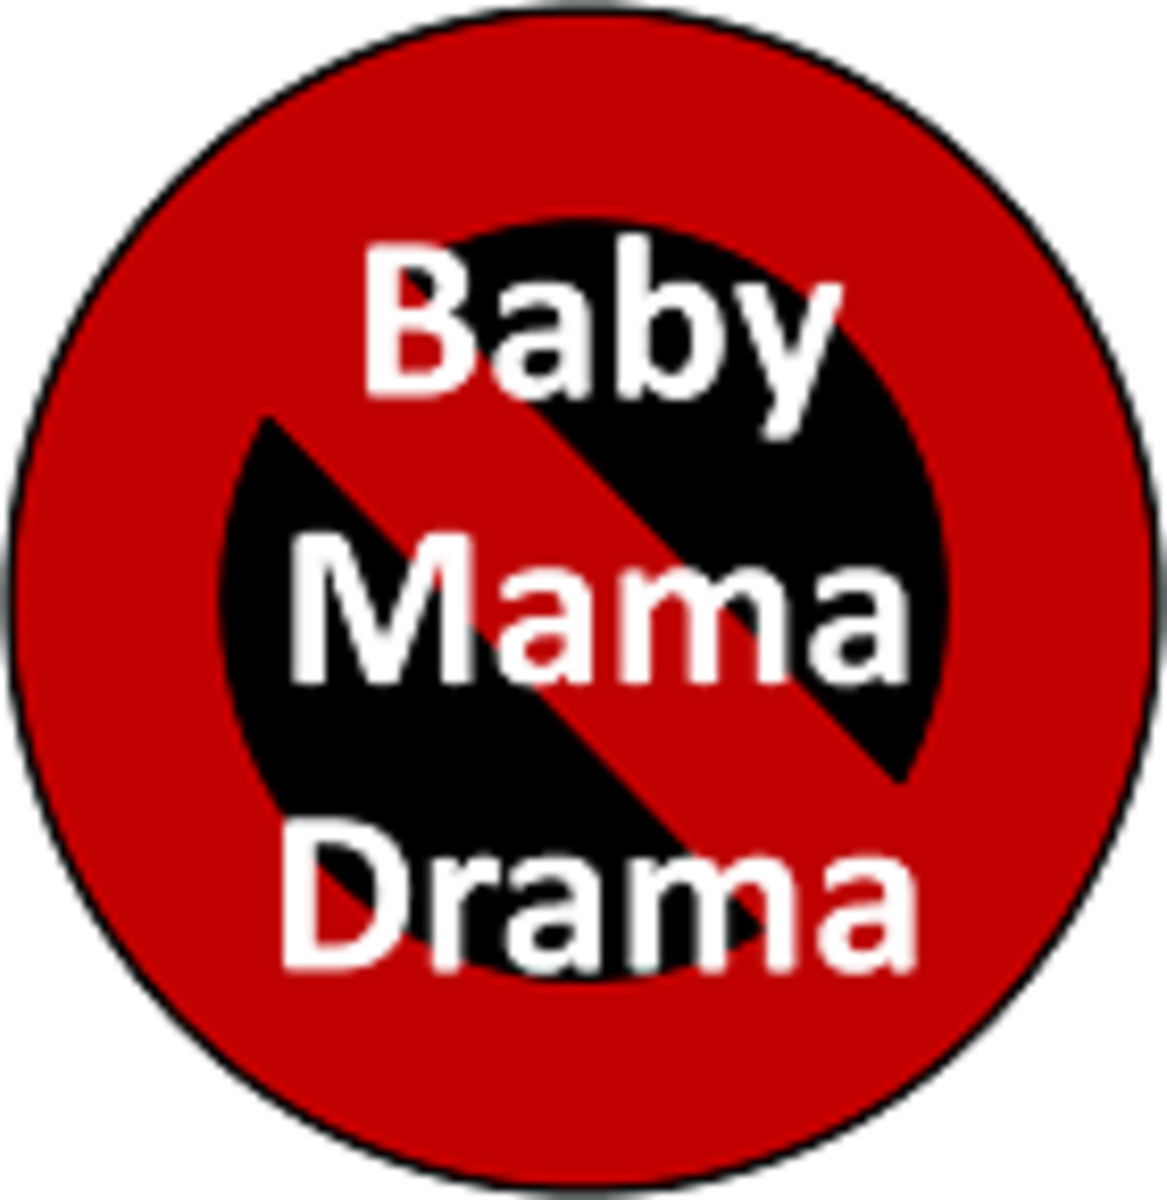 helping-men-deal-with-their-baby-mama-drama